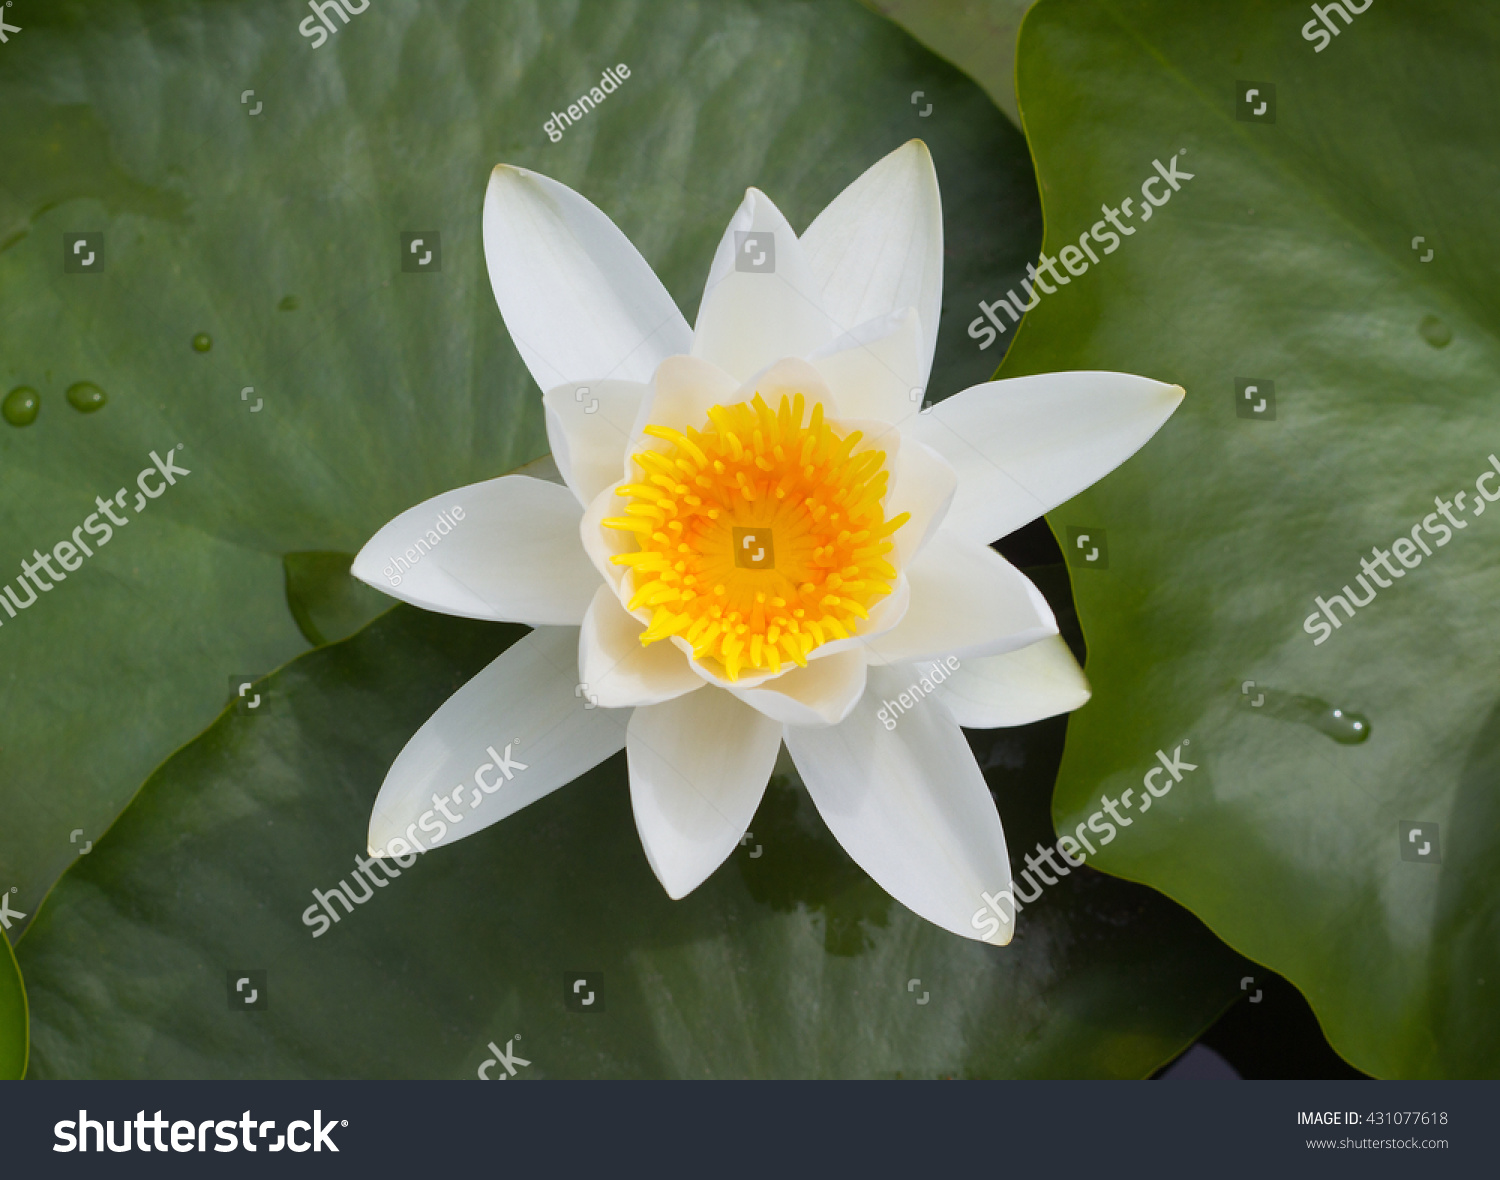 Top view lotus flower leaves on stock photo edit now 431077618 top view of lotus flower and leaves on pond izmirmasajfo